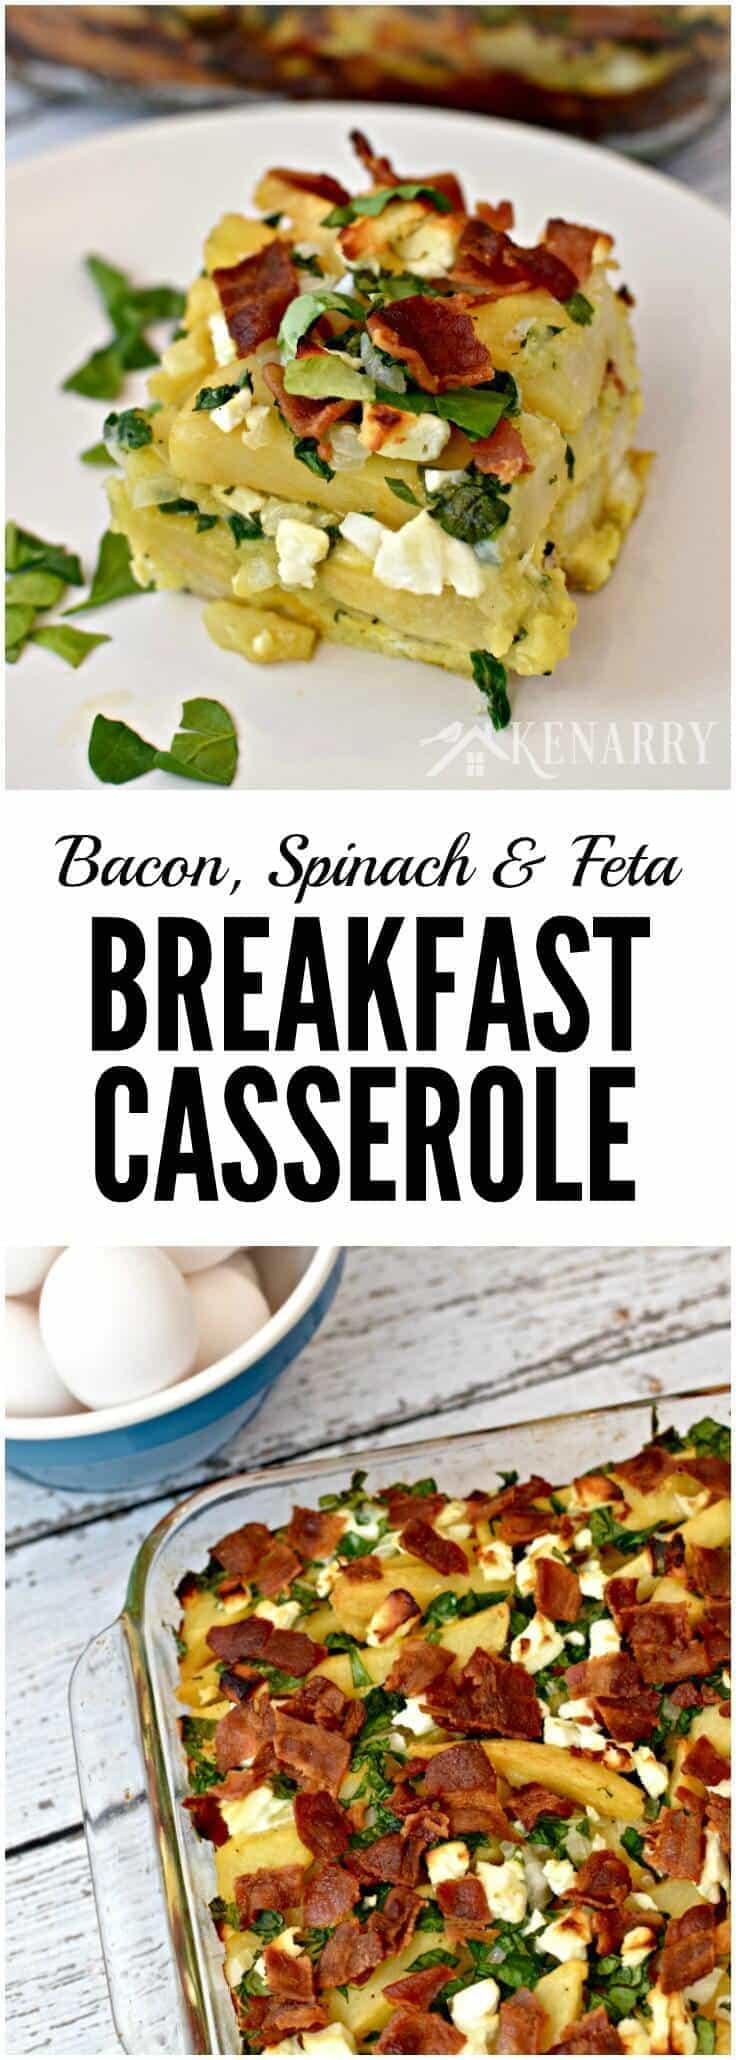 Bacon, spinach and feta breakfast casserole served on a white plate